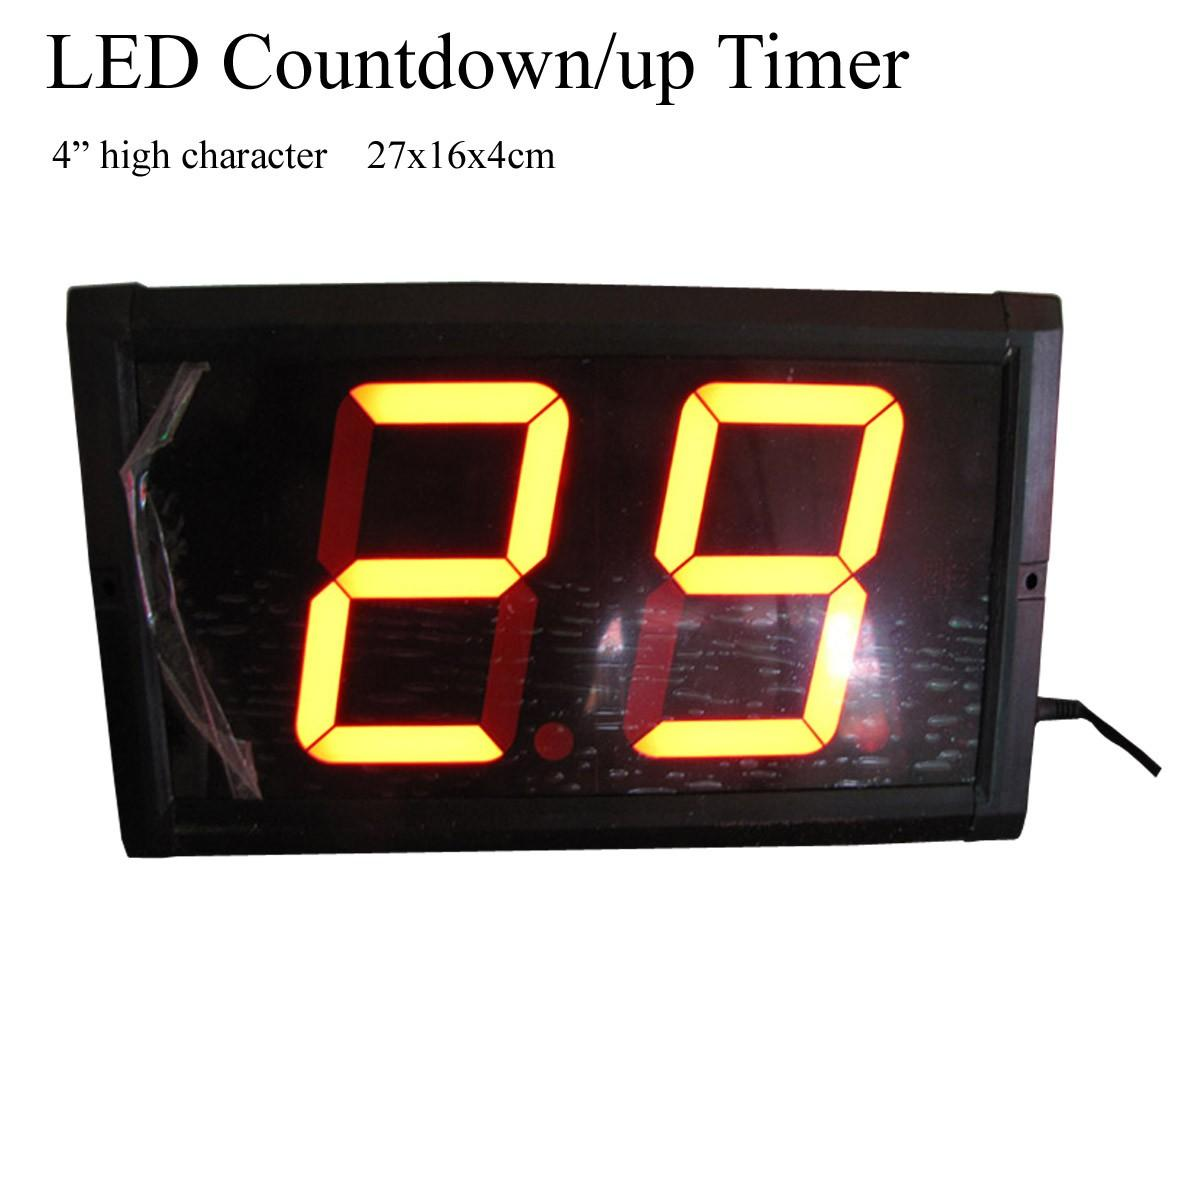 New 4 High 2 Digits Led Counter Timer Led Countdown